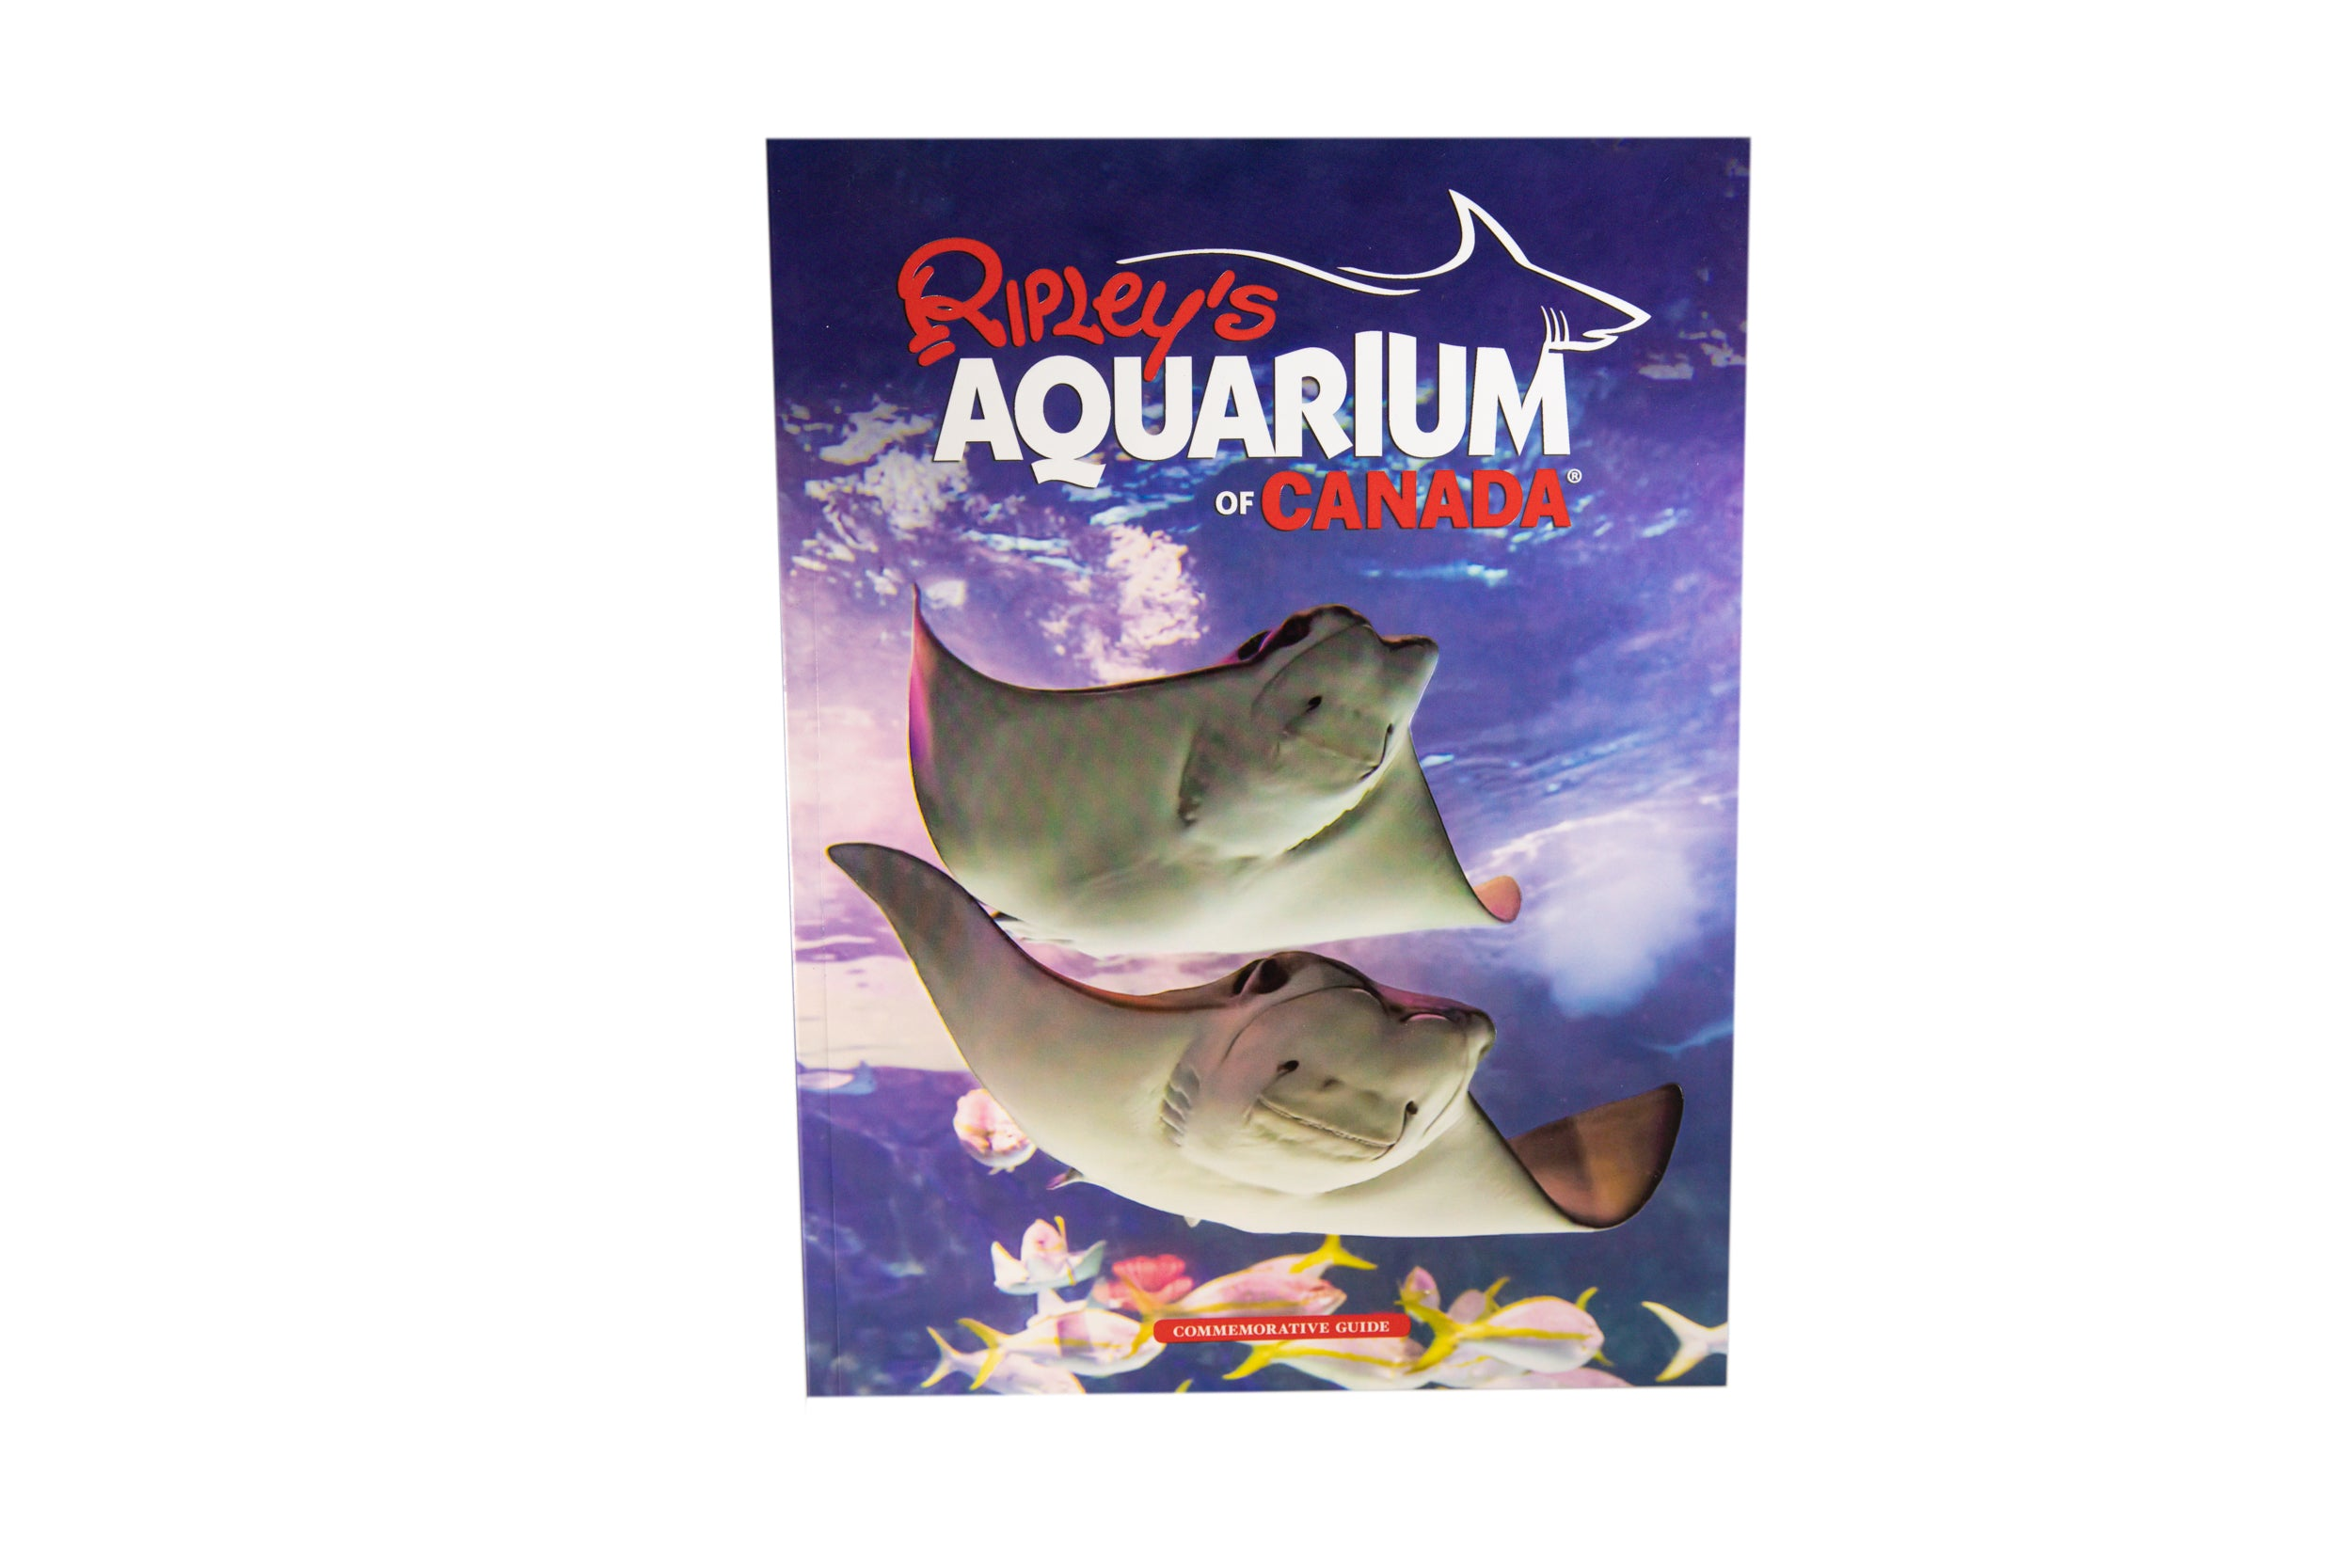 Ripley's Aquarium of Canada Commemorative Guide